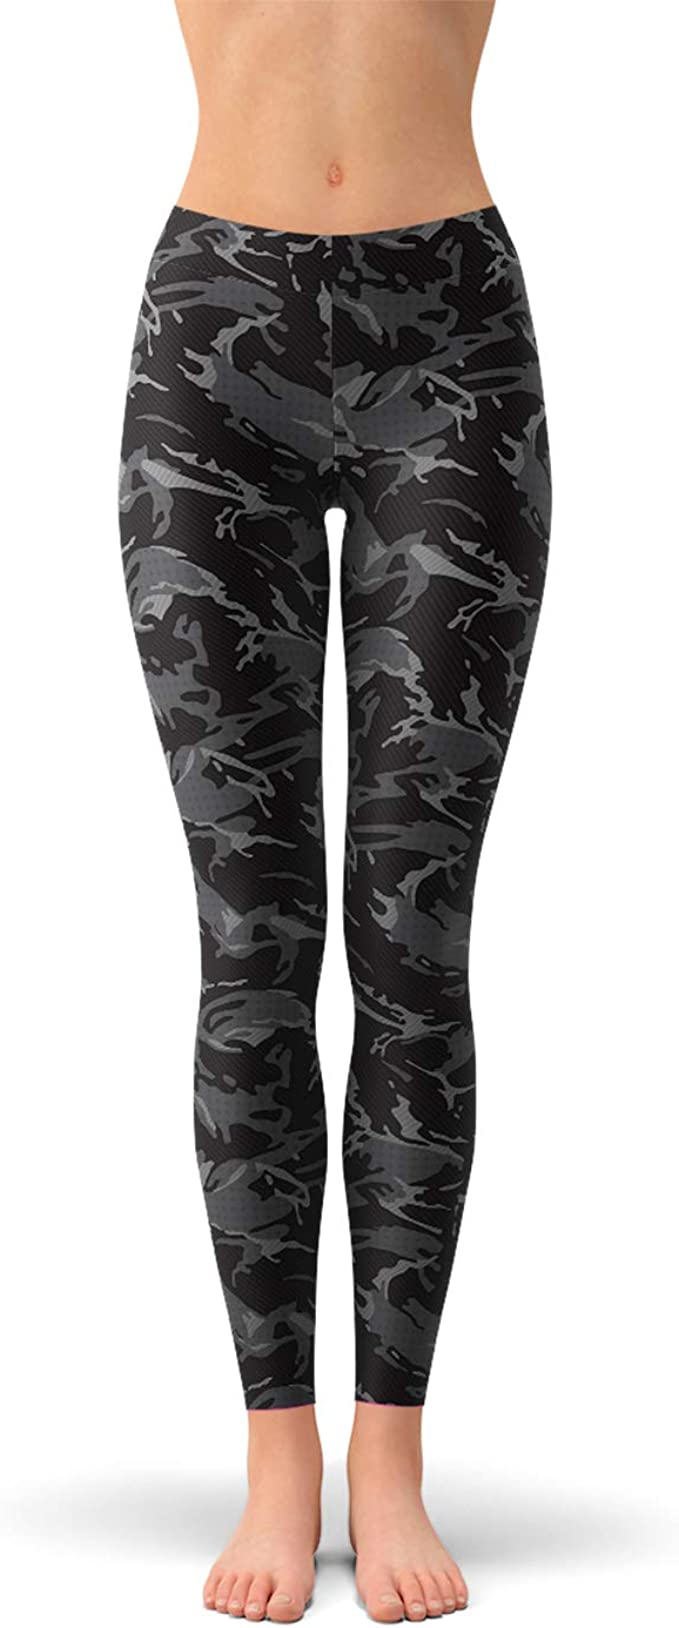 sangue Morte permeabilità  Satori_Stylez Black Camo Leggings for Women Mid Waisted Pants with Dark and  Gray Camouflage Print at Amazon Women's Clothing store